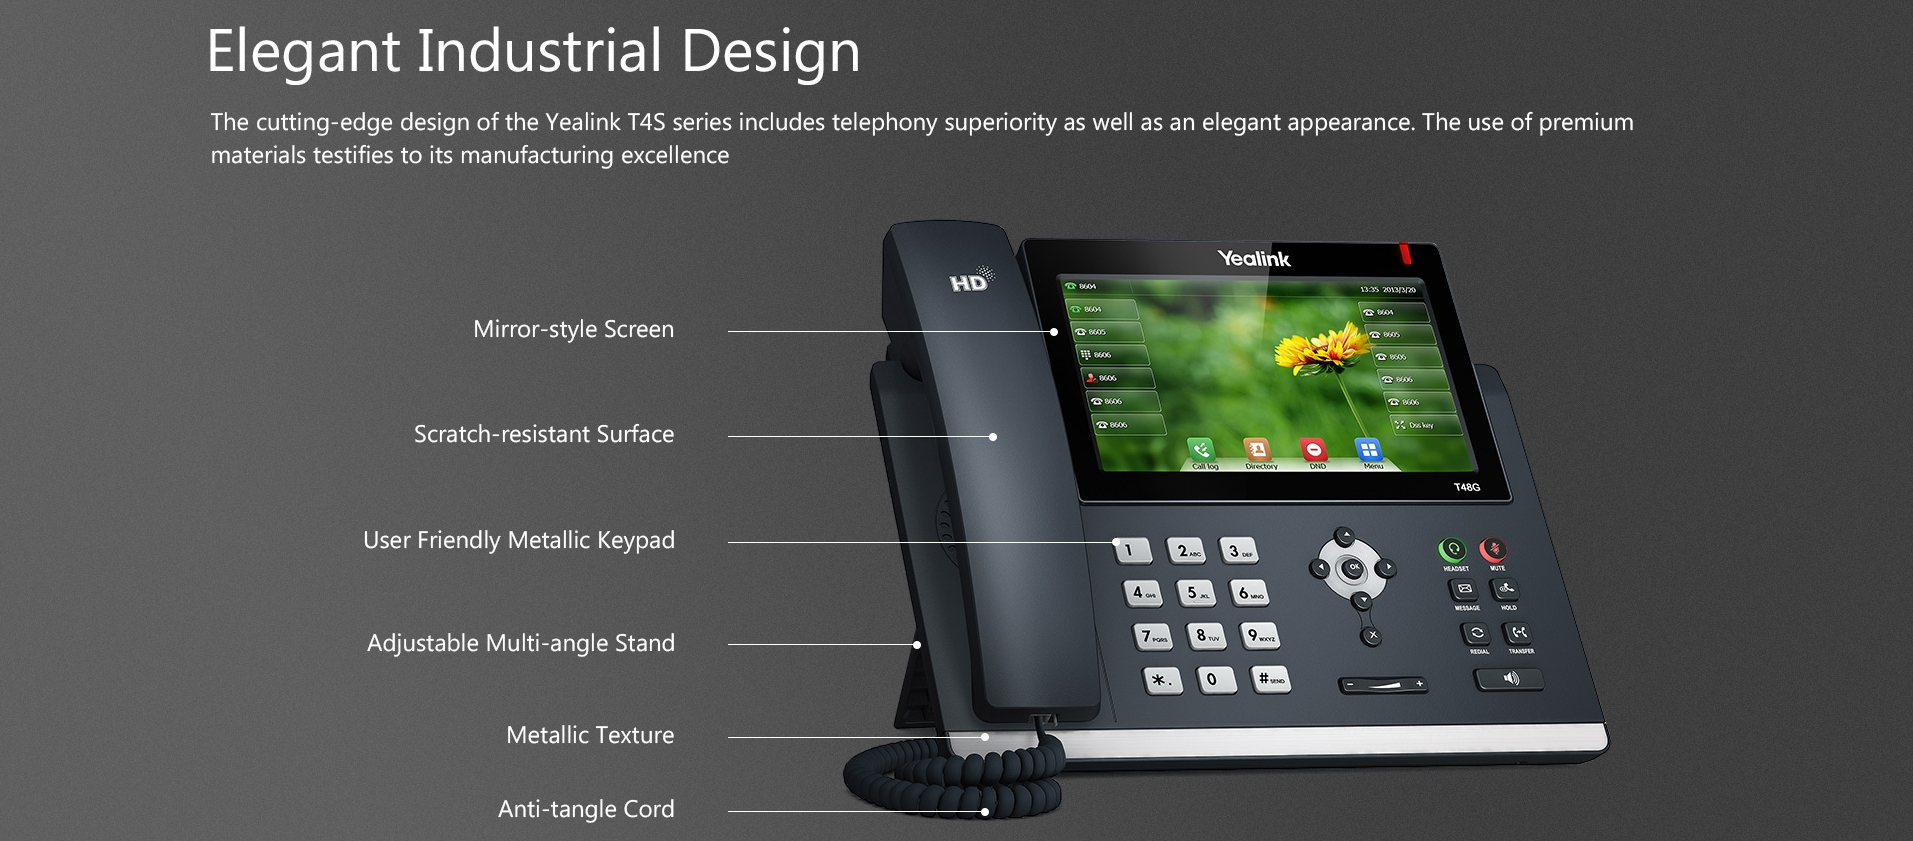 Durable and elegant IP phone design